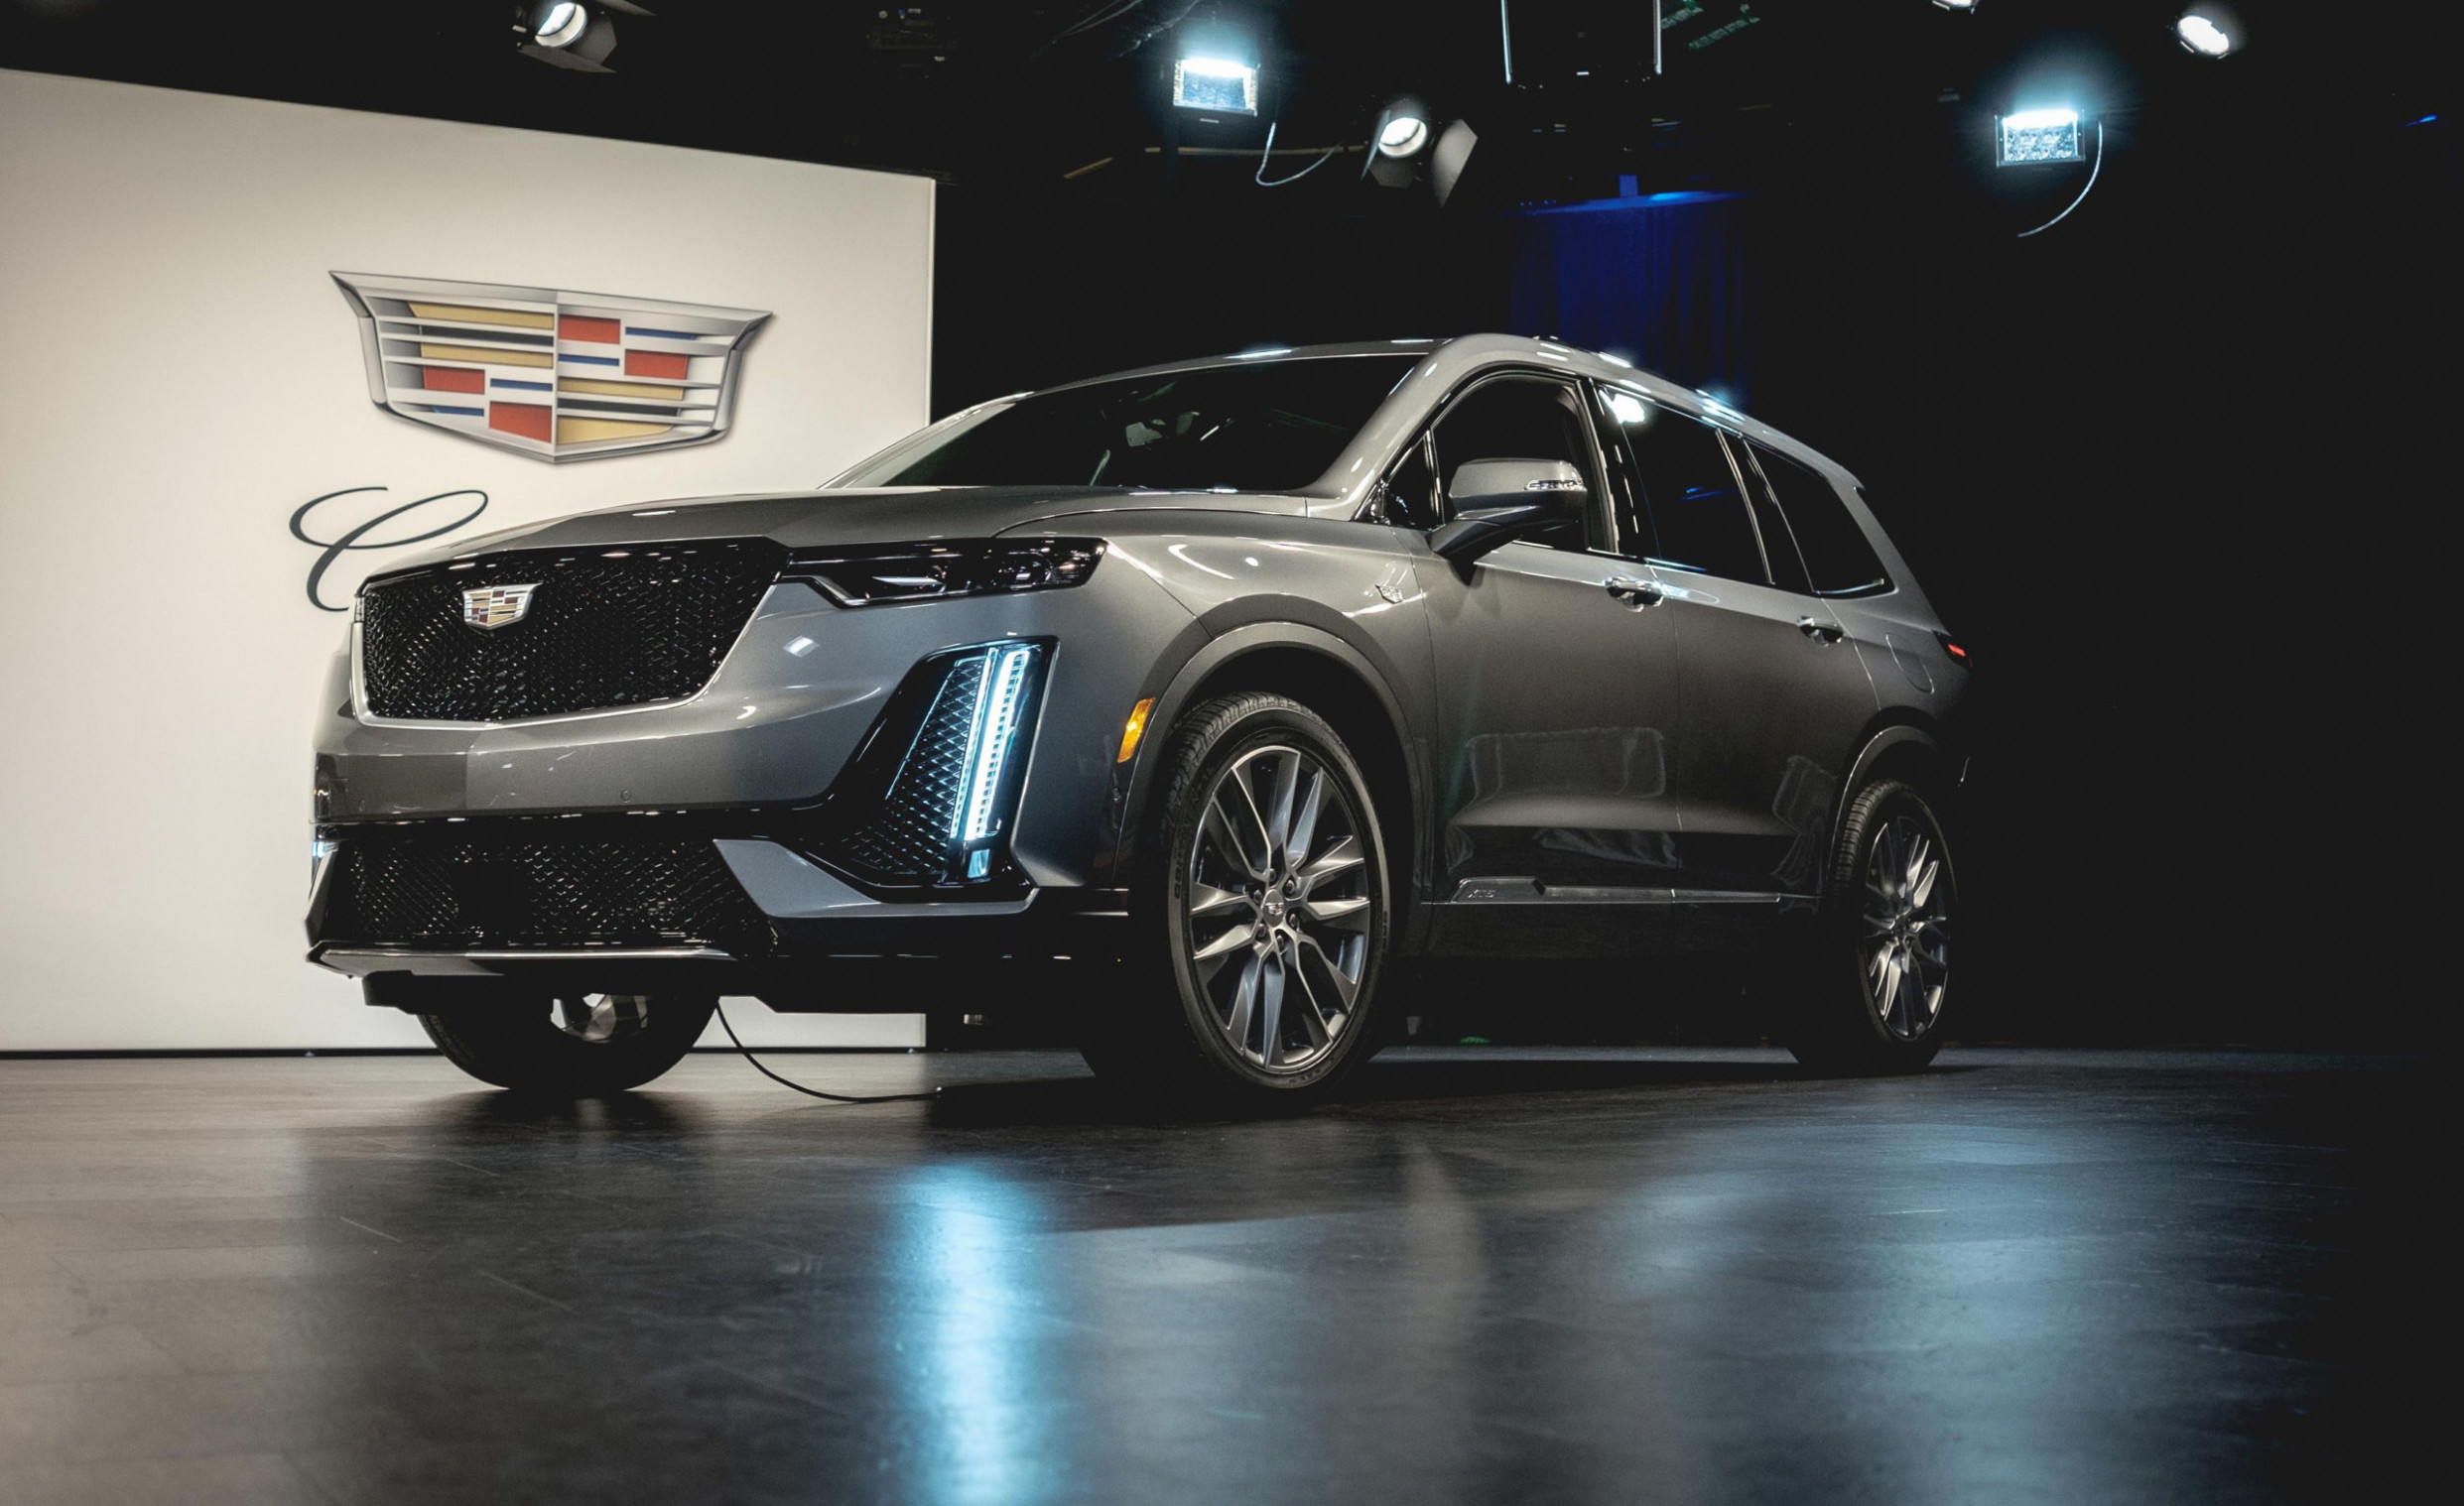 New Model and Performance 2022 Cadillac Xt6 Dimensions